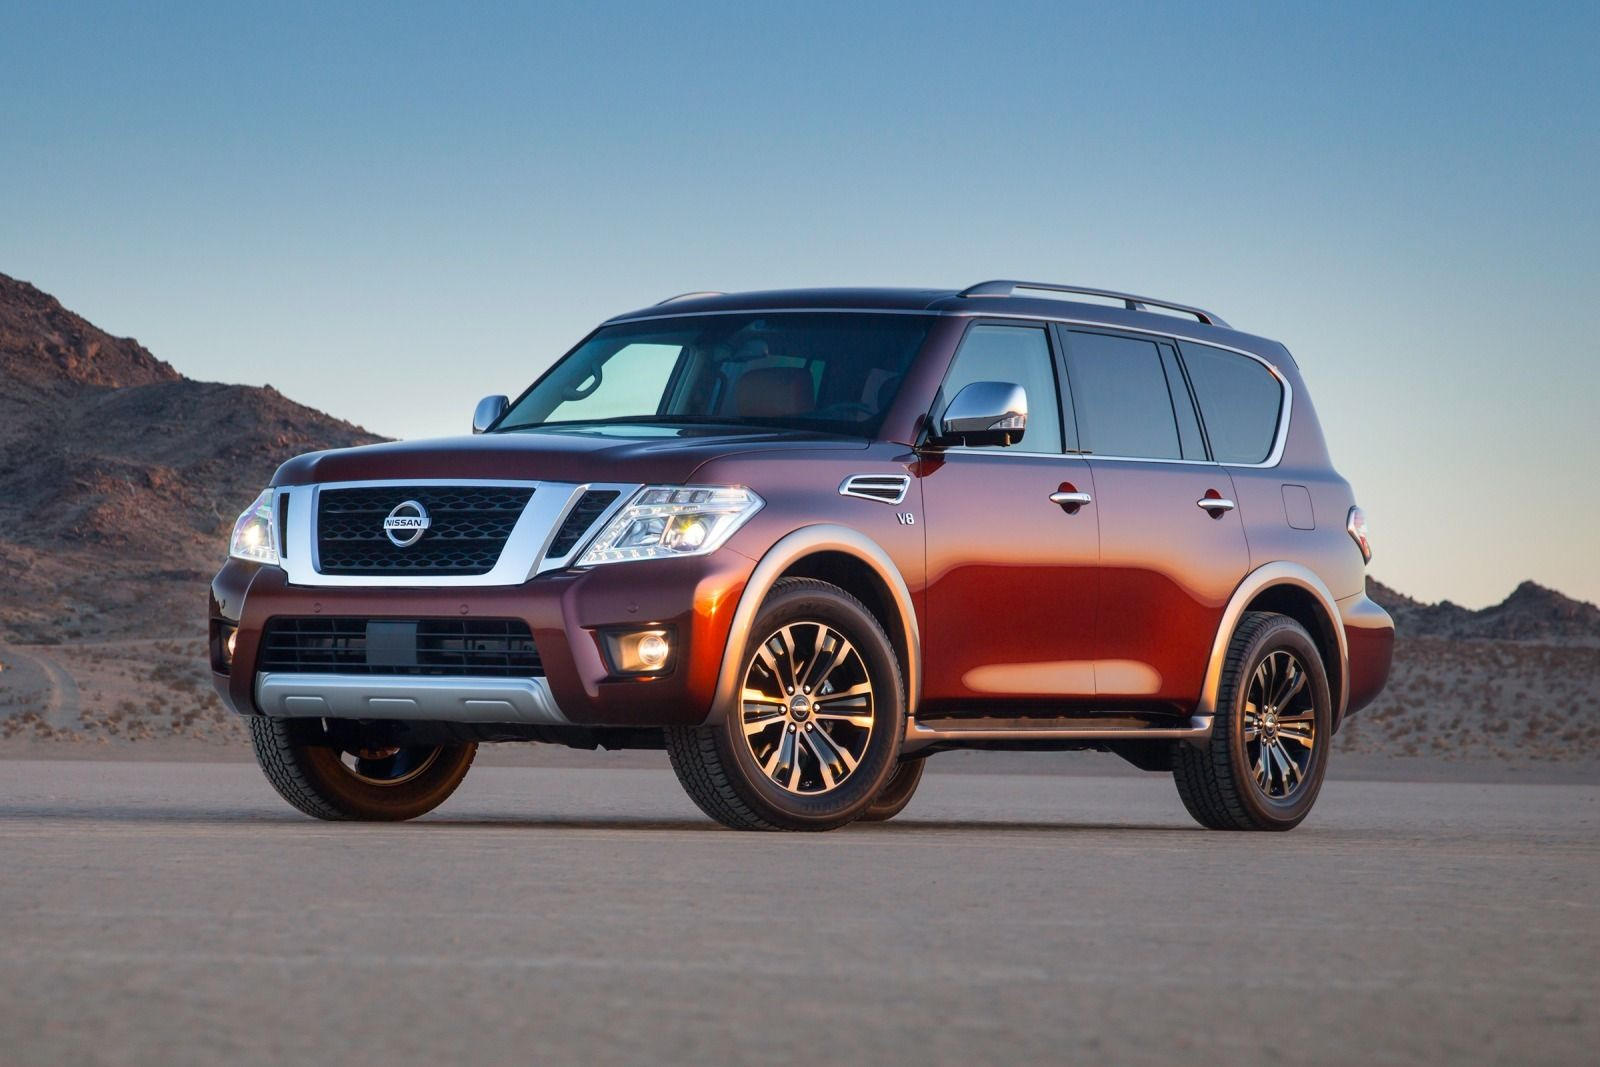 2020 Nissan Armada Review Trims Specs Price New Interior Features Exterior Design And Specifications Carbuzz